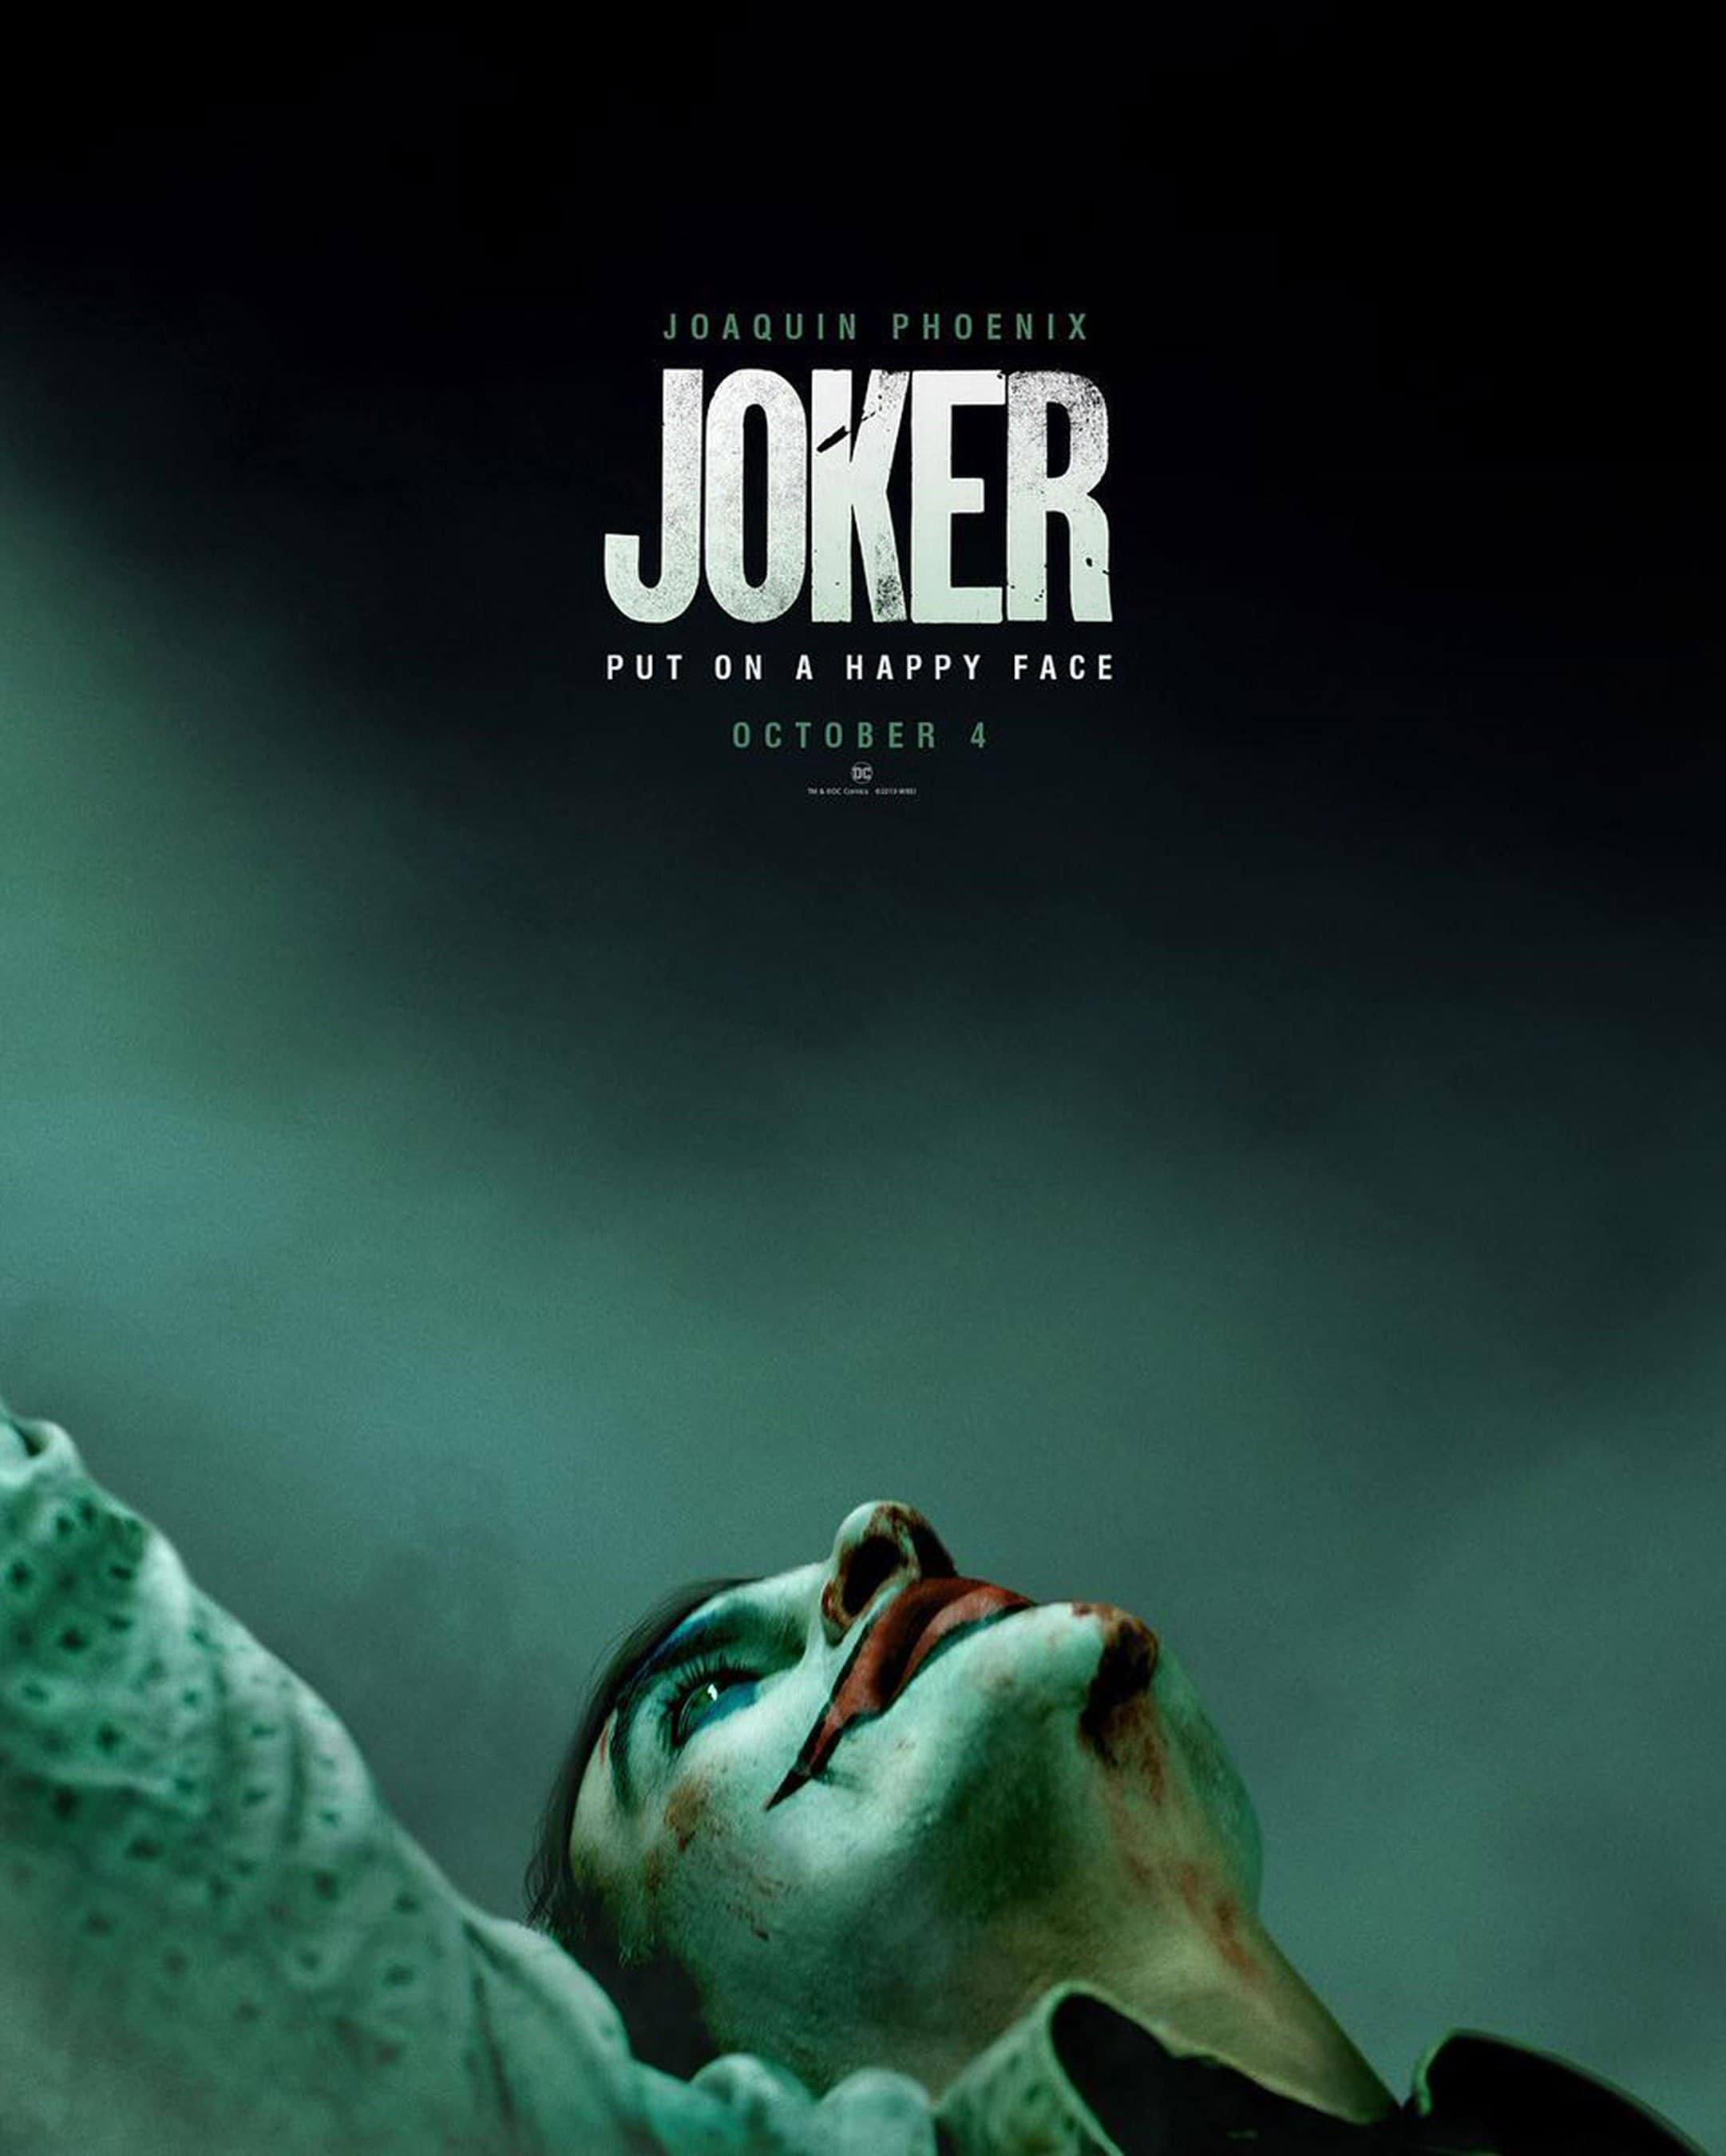 Joaquin Phoenix is the Joker 2019